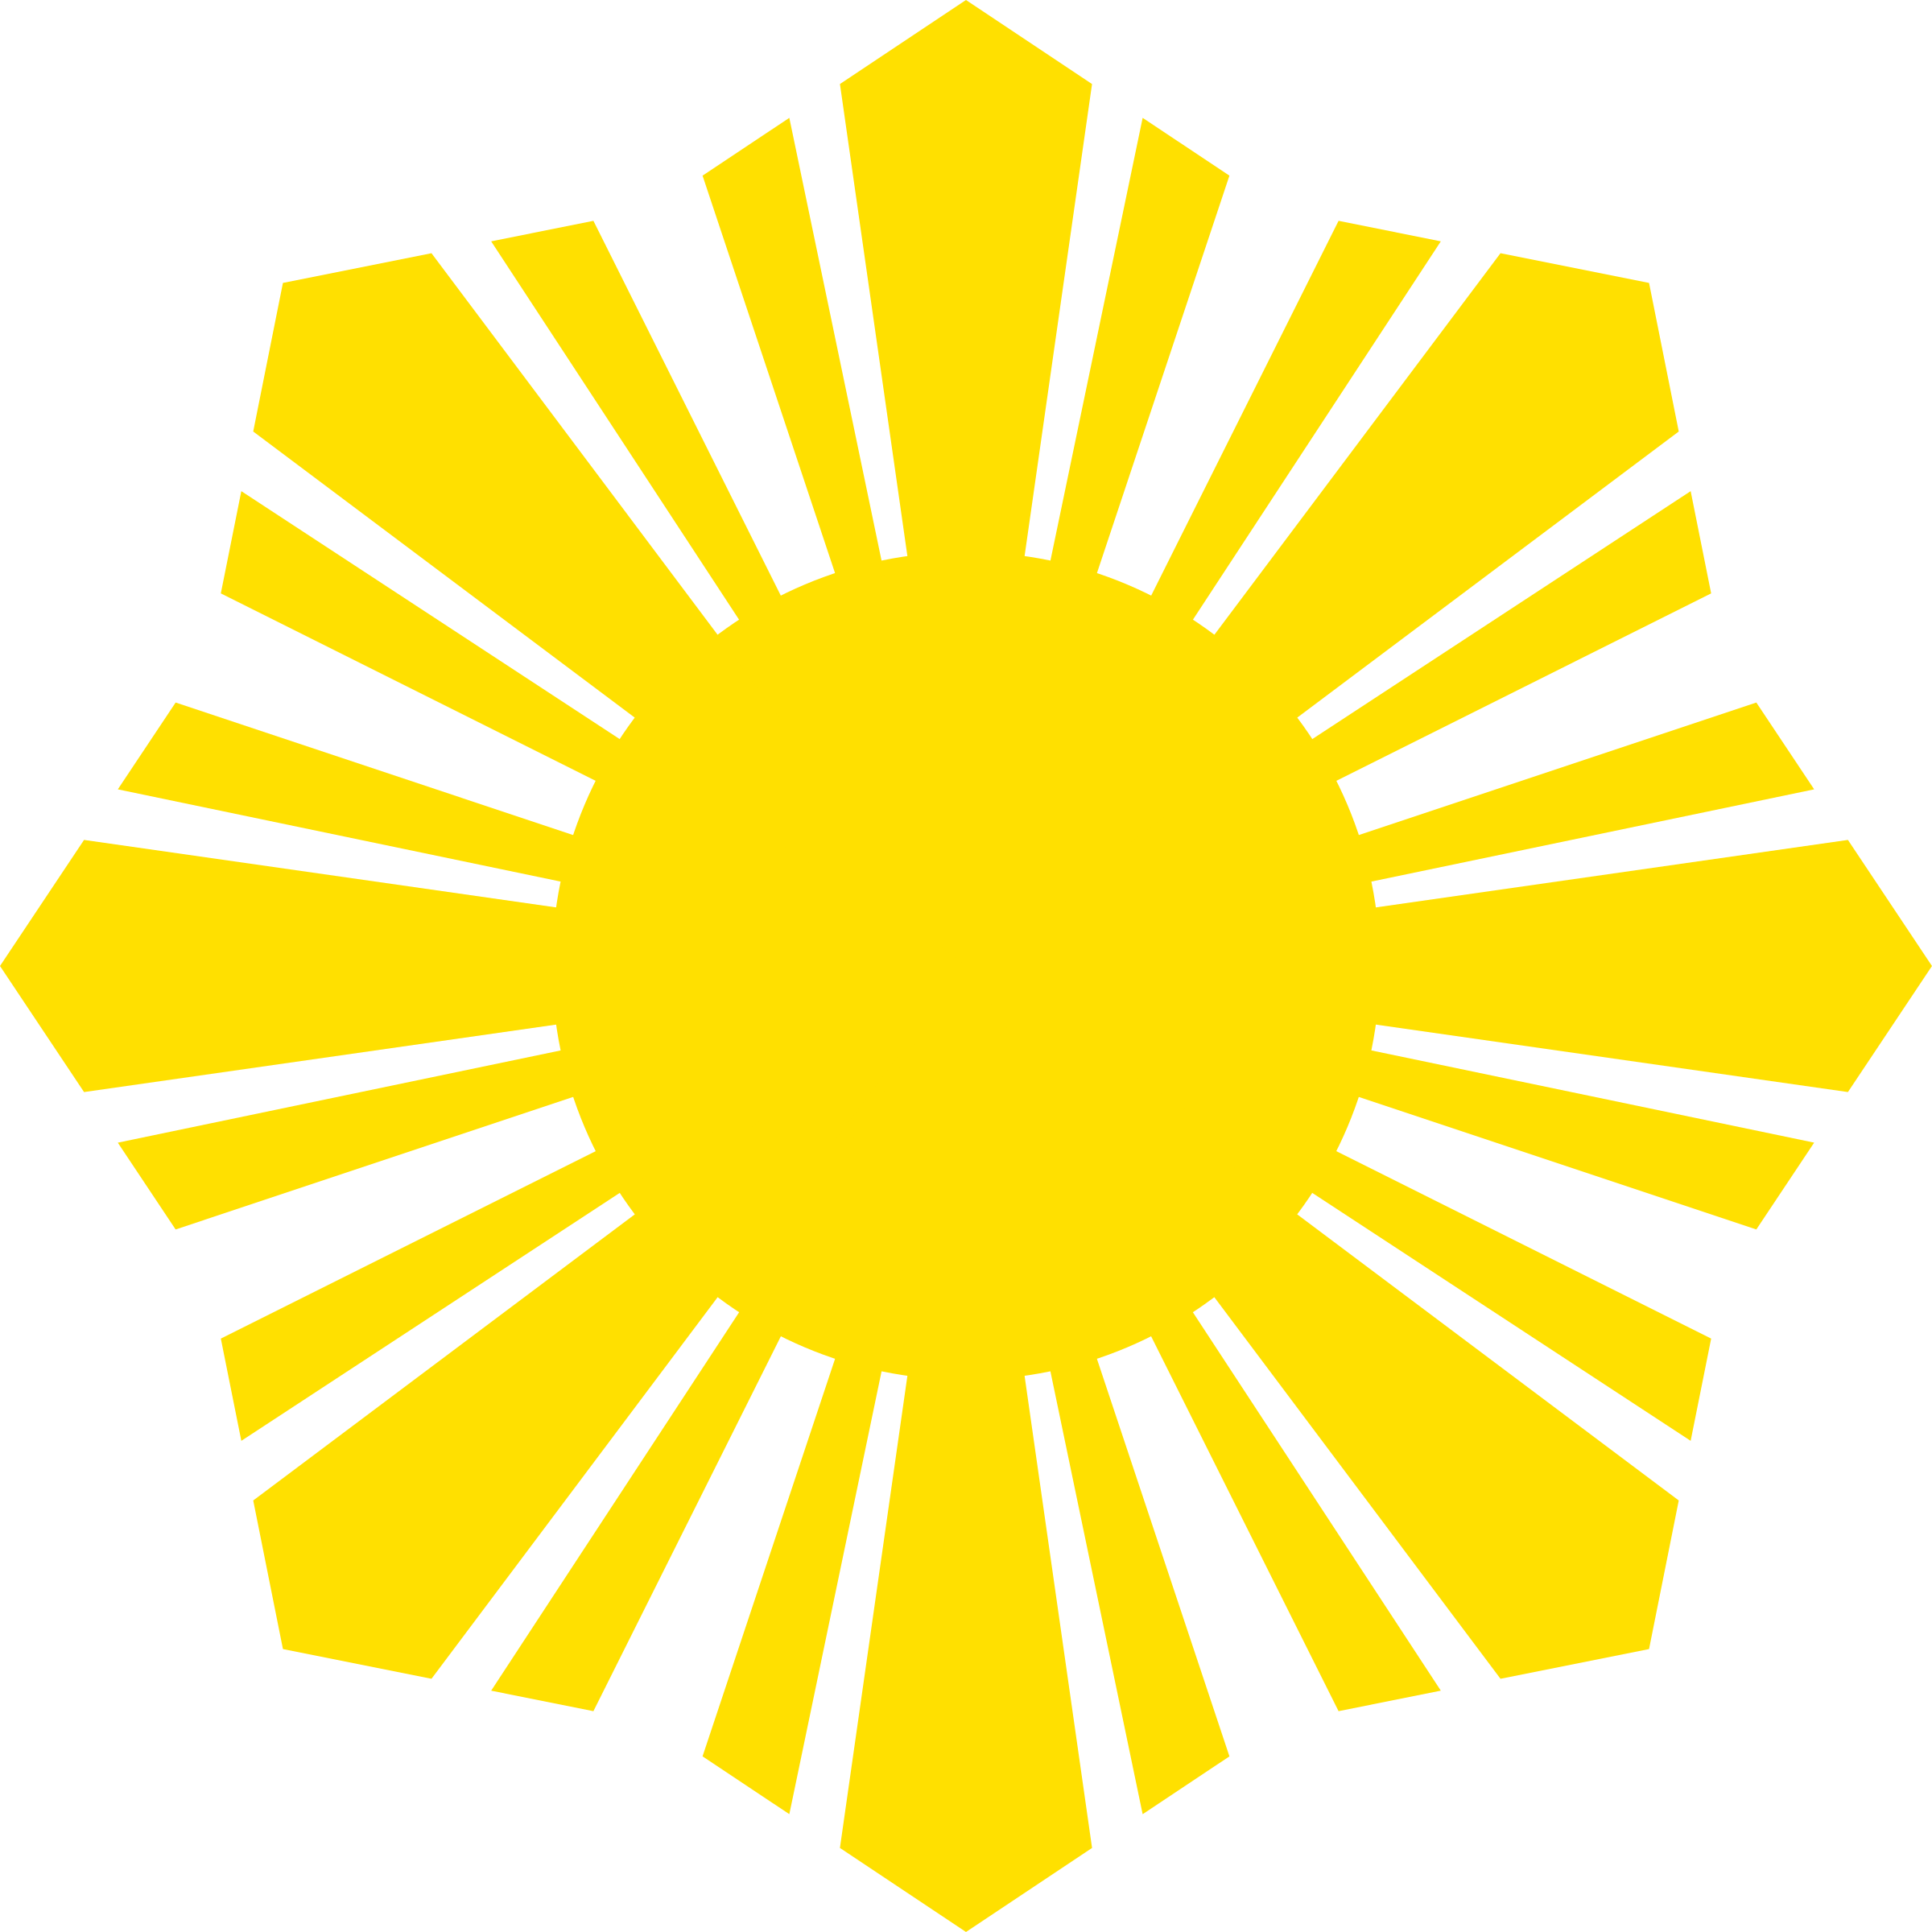 Mango clipart philippine symbol. Sun icons png vector